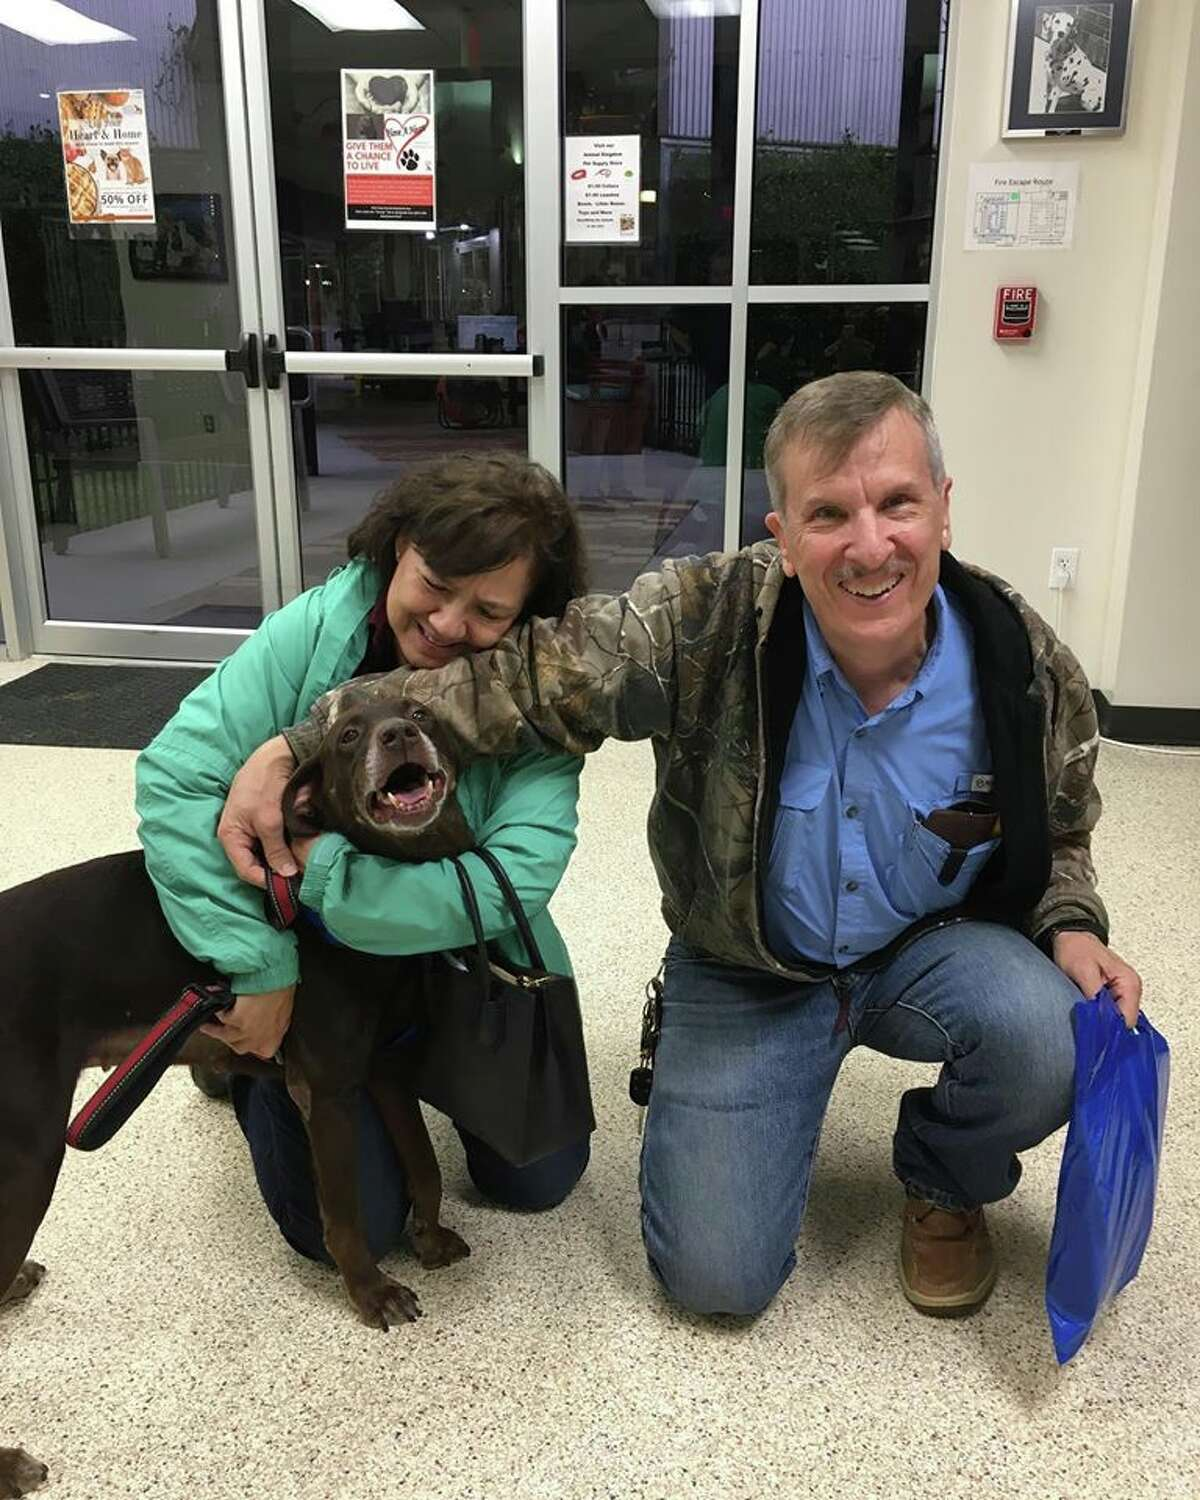 These Houston pets were adopted from the Houston Humane Society in 2019 and 2020.